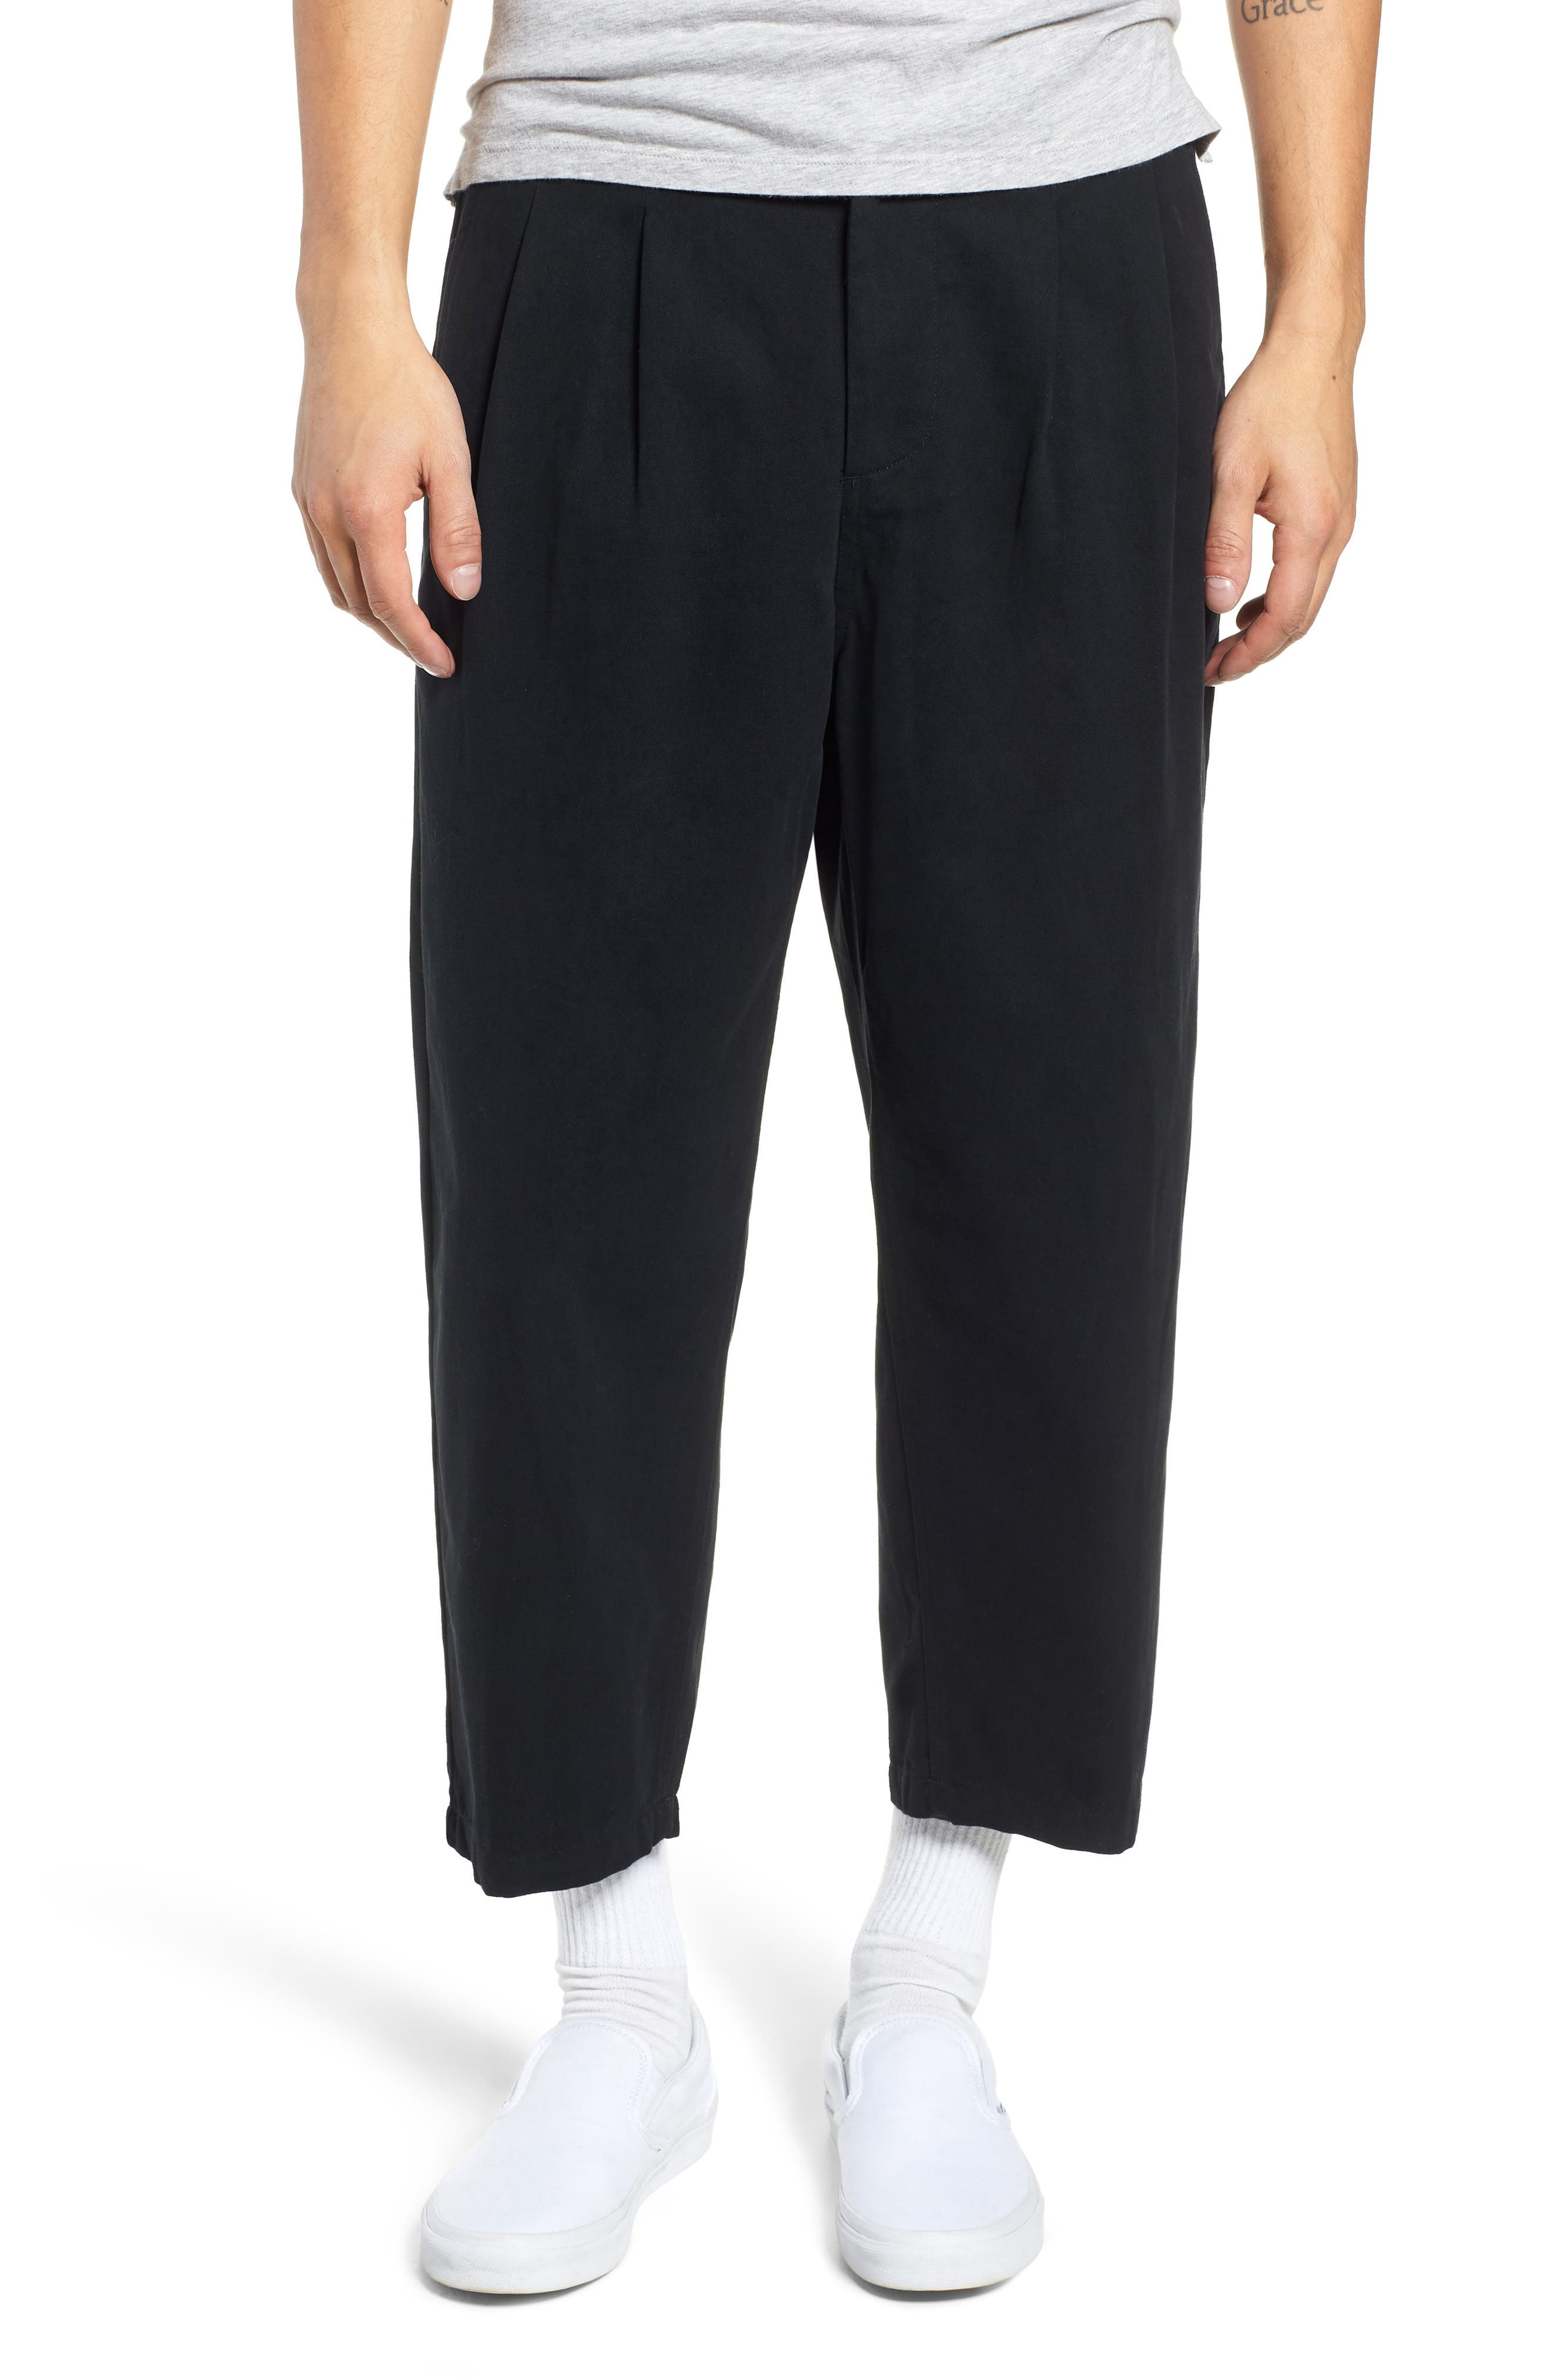 Fubar Pleated Relaxed Fit Pants,                         Main,                         color, BLACK